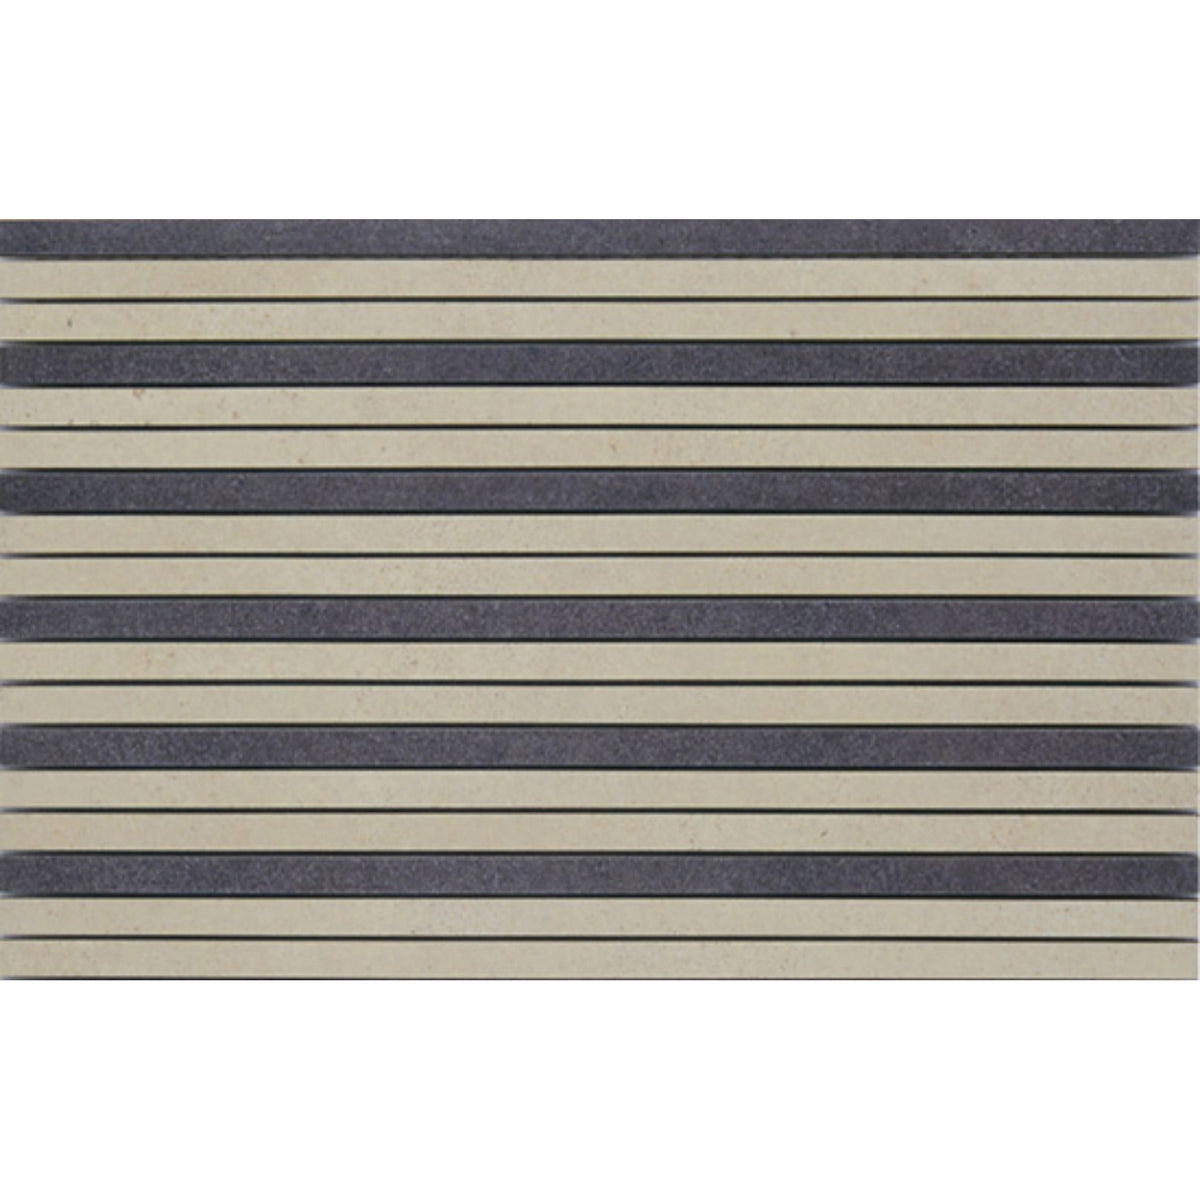 Interceramic - Habitat - Marrone 16 in. x 24 in. Linear Mosaic